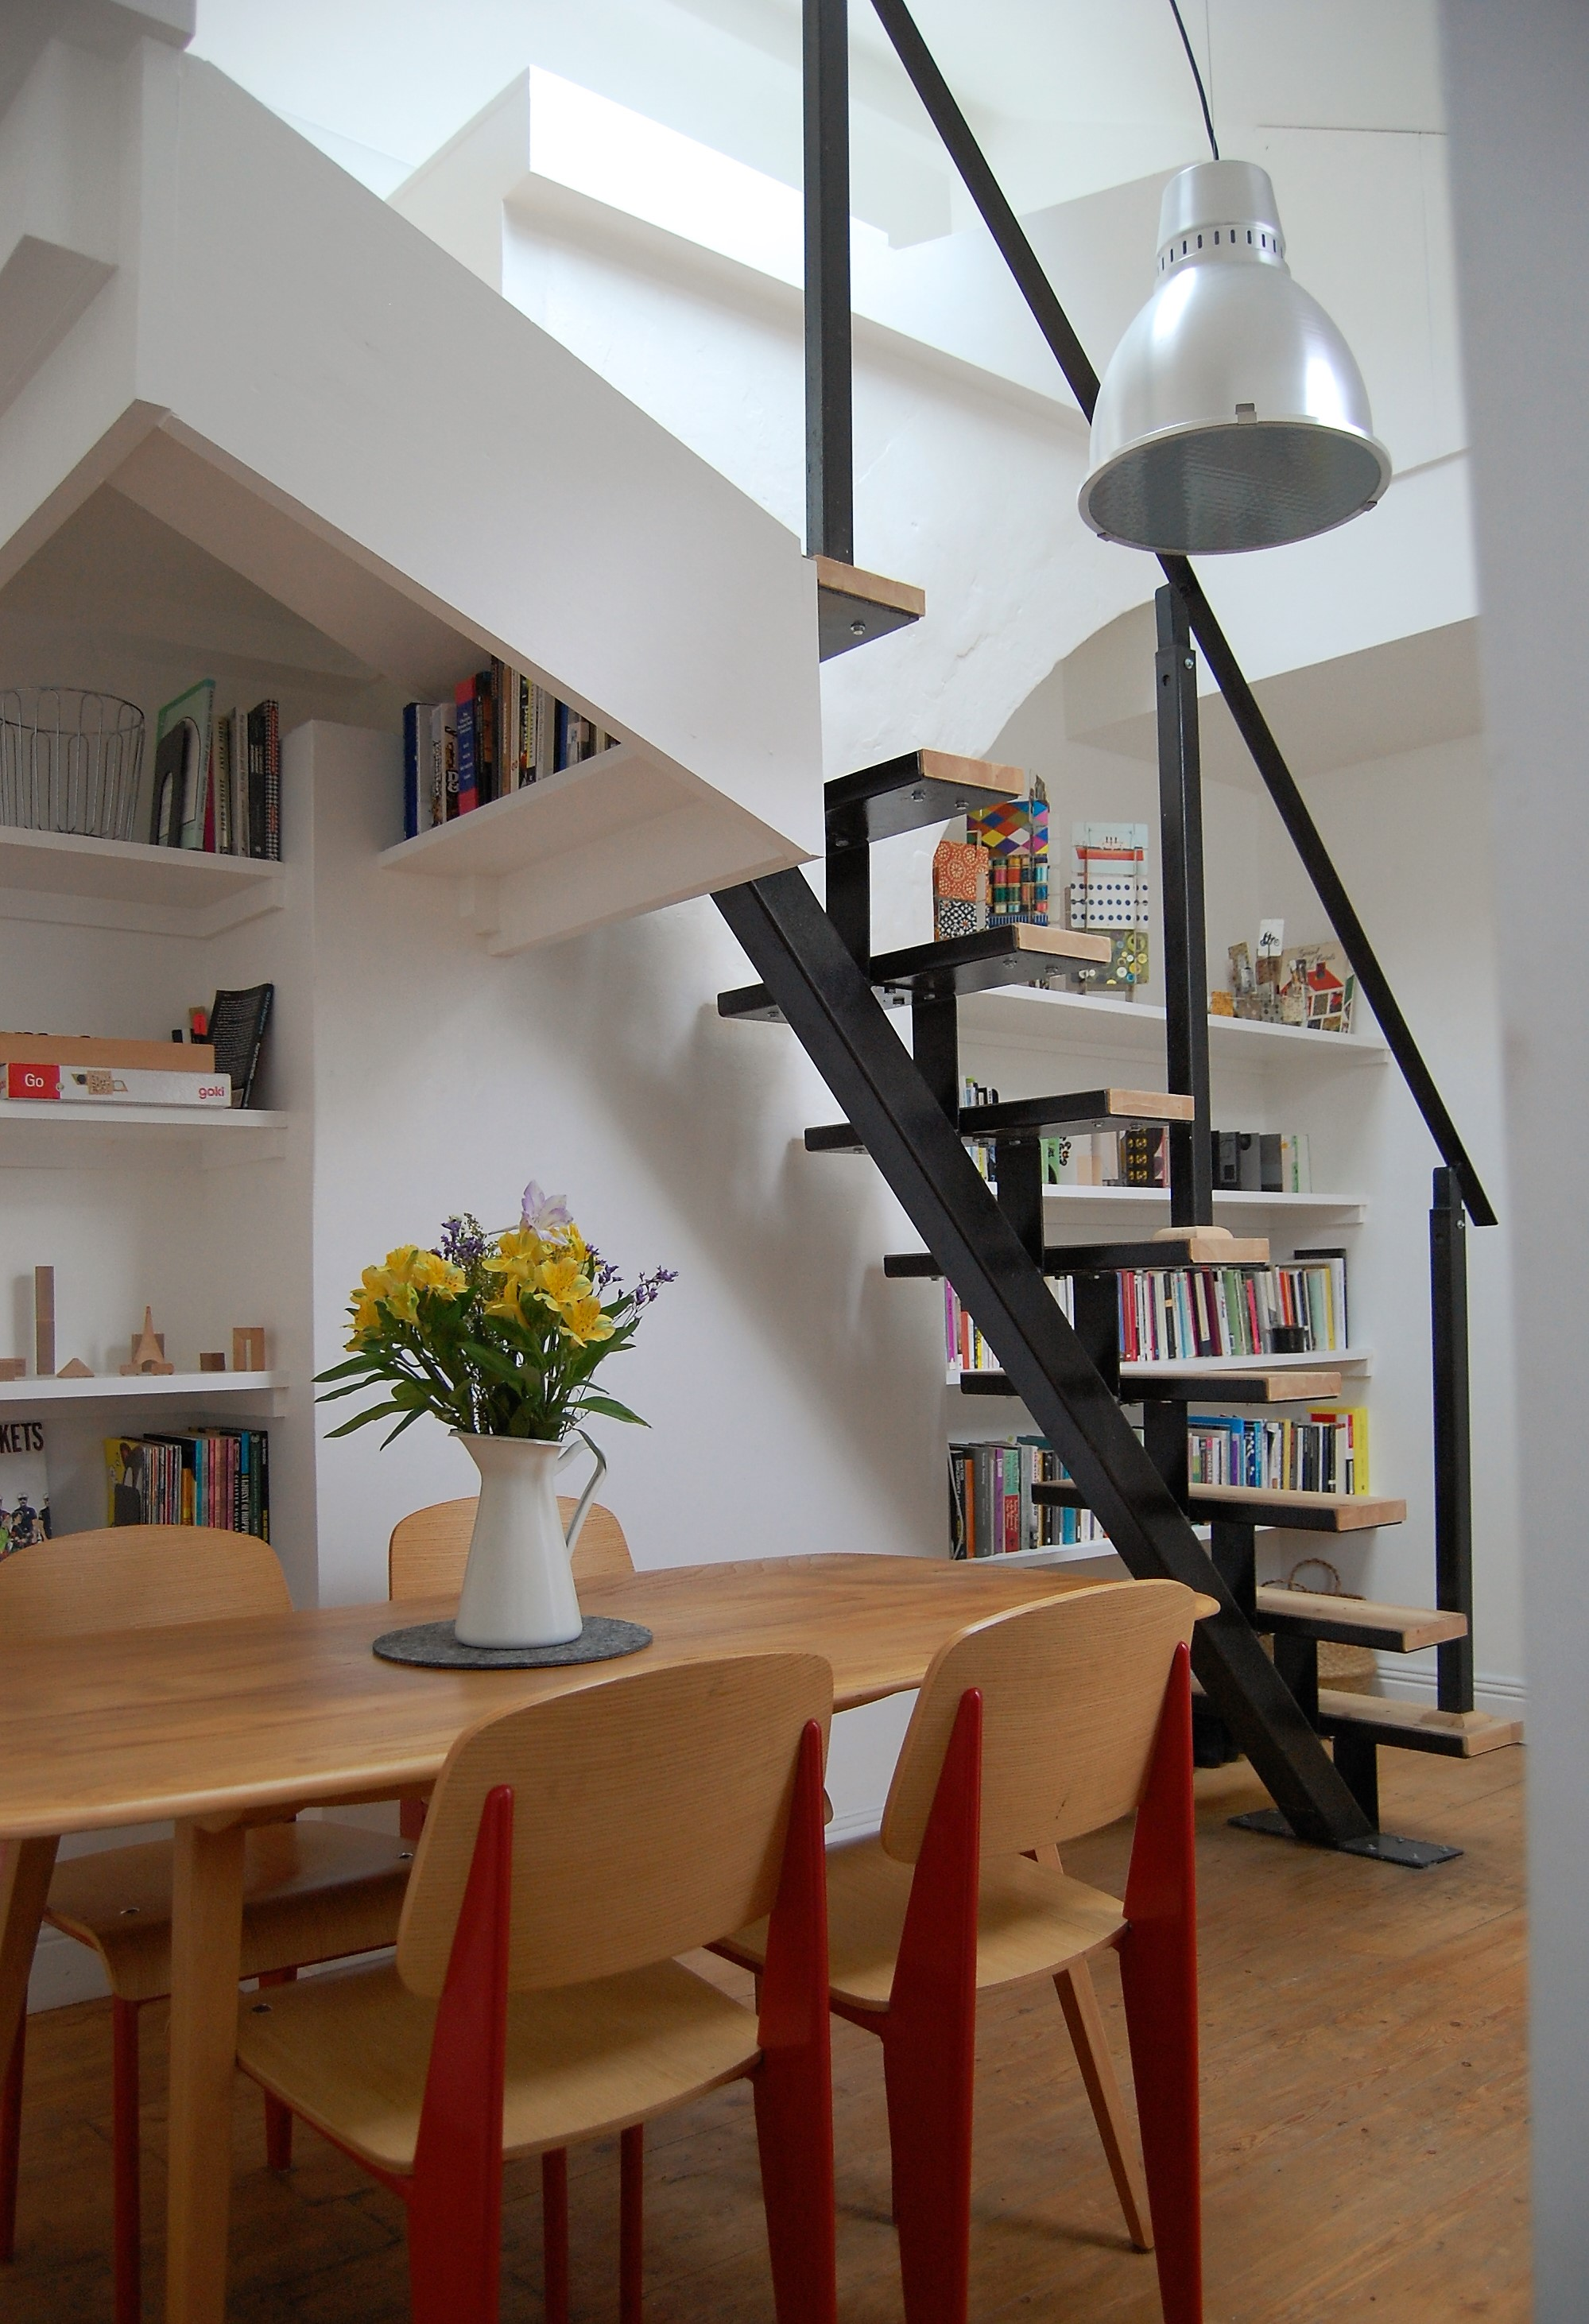 Dining Space With Stairs and Display Wall